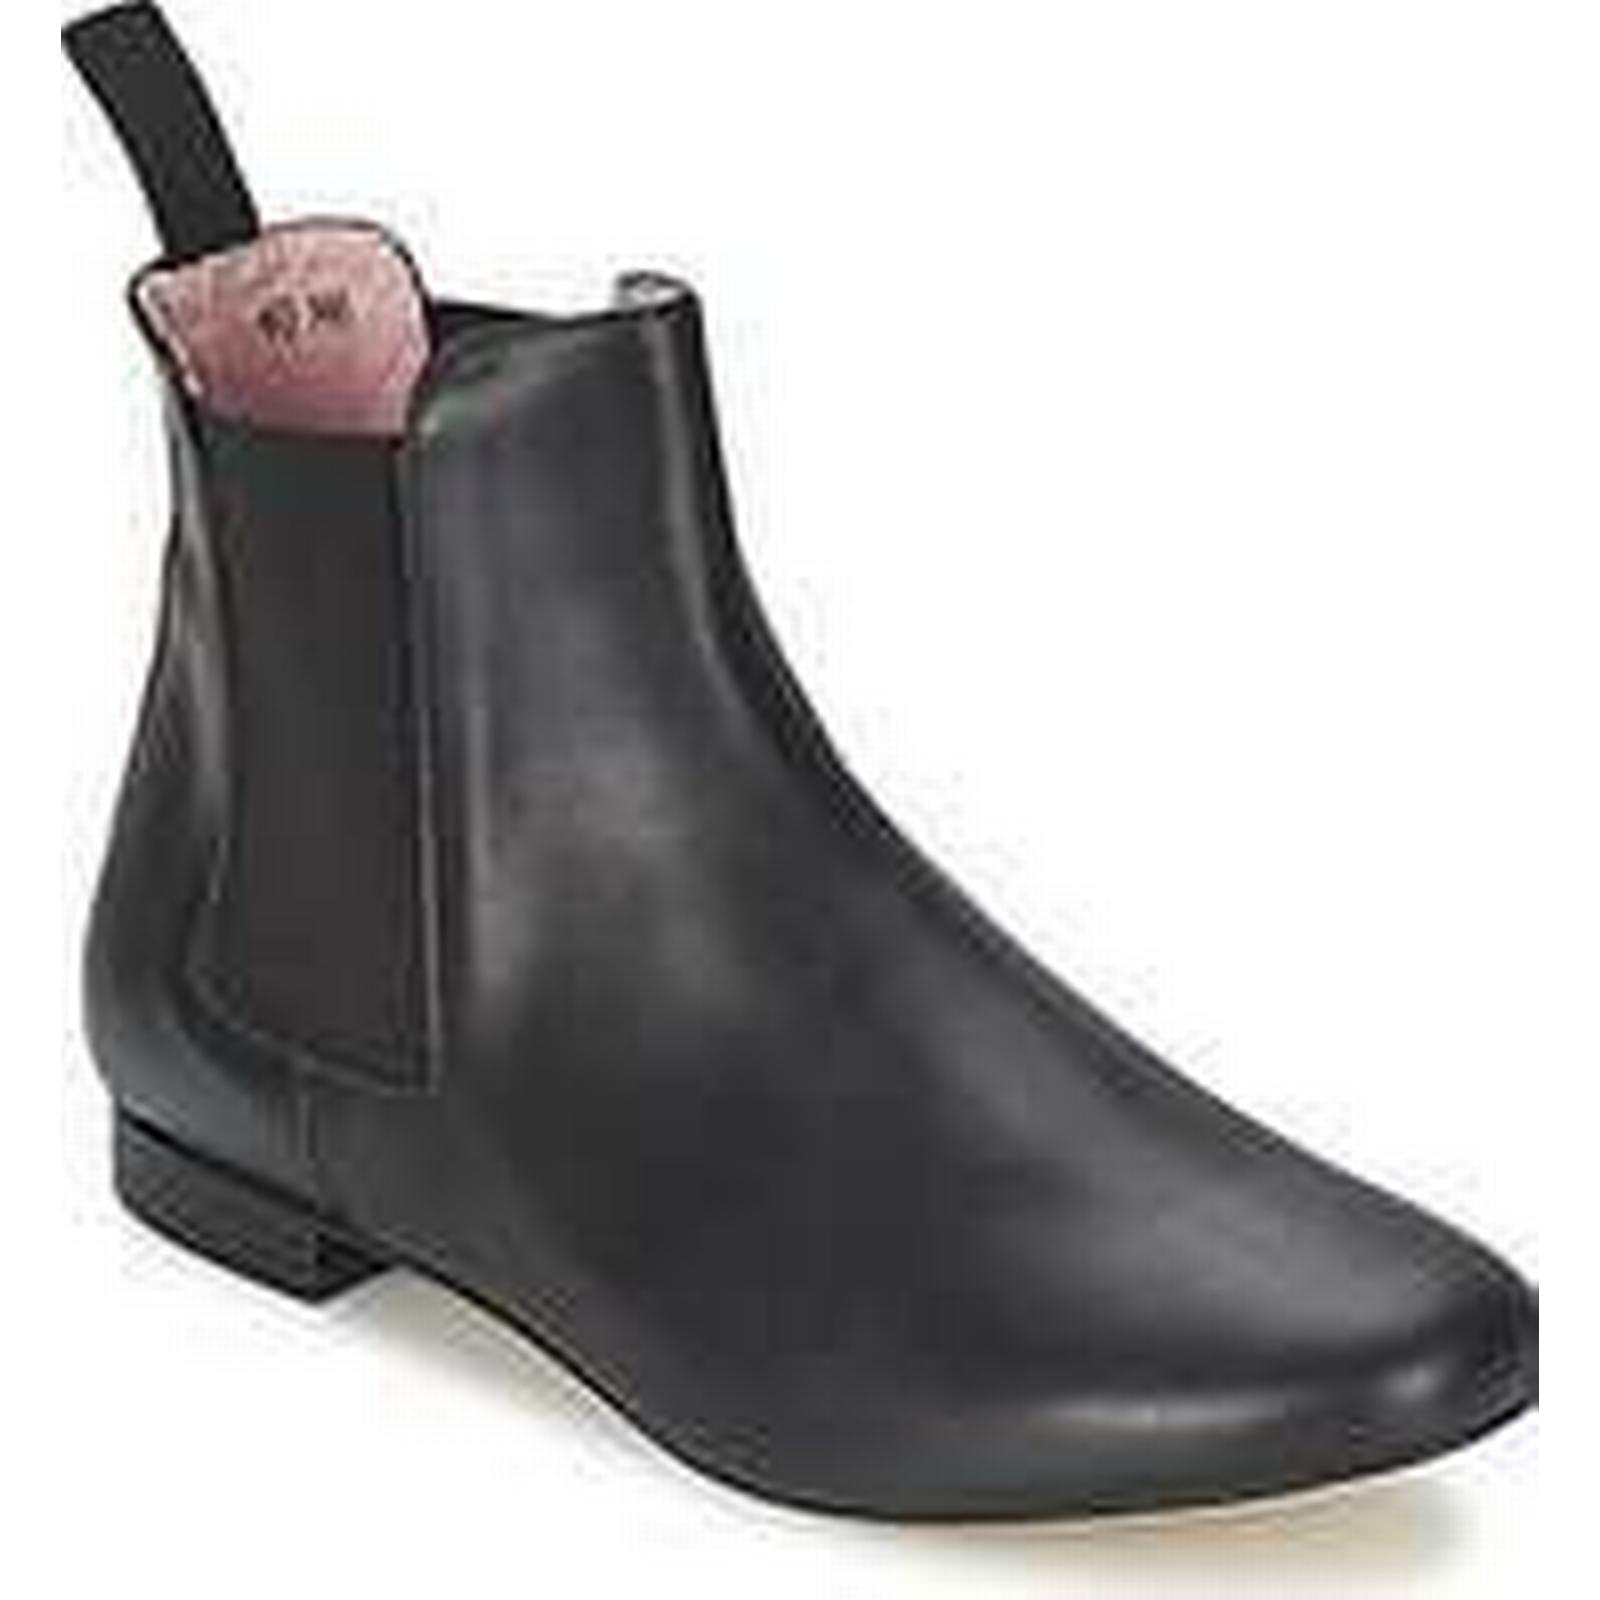 Spartoo.co.uk Low Elia B CLAIRE women's Low Spartoo.co.uk Ankle Boots in Black 056504